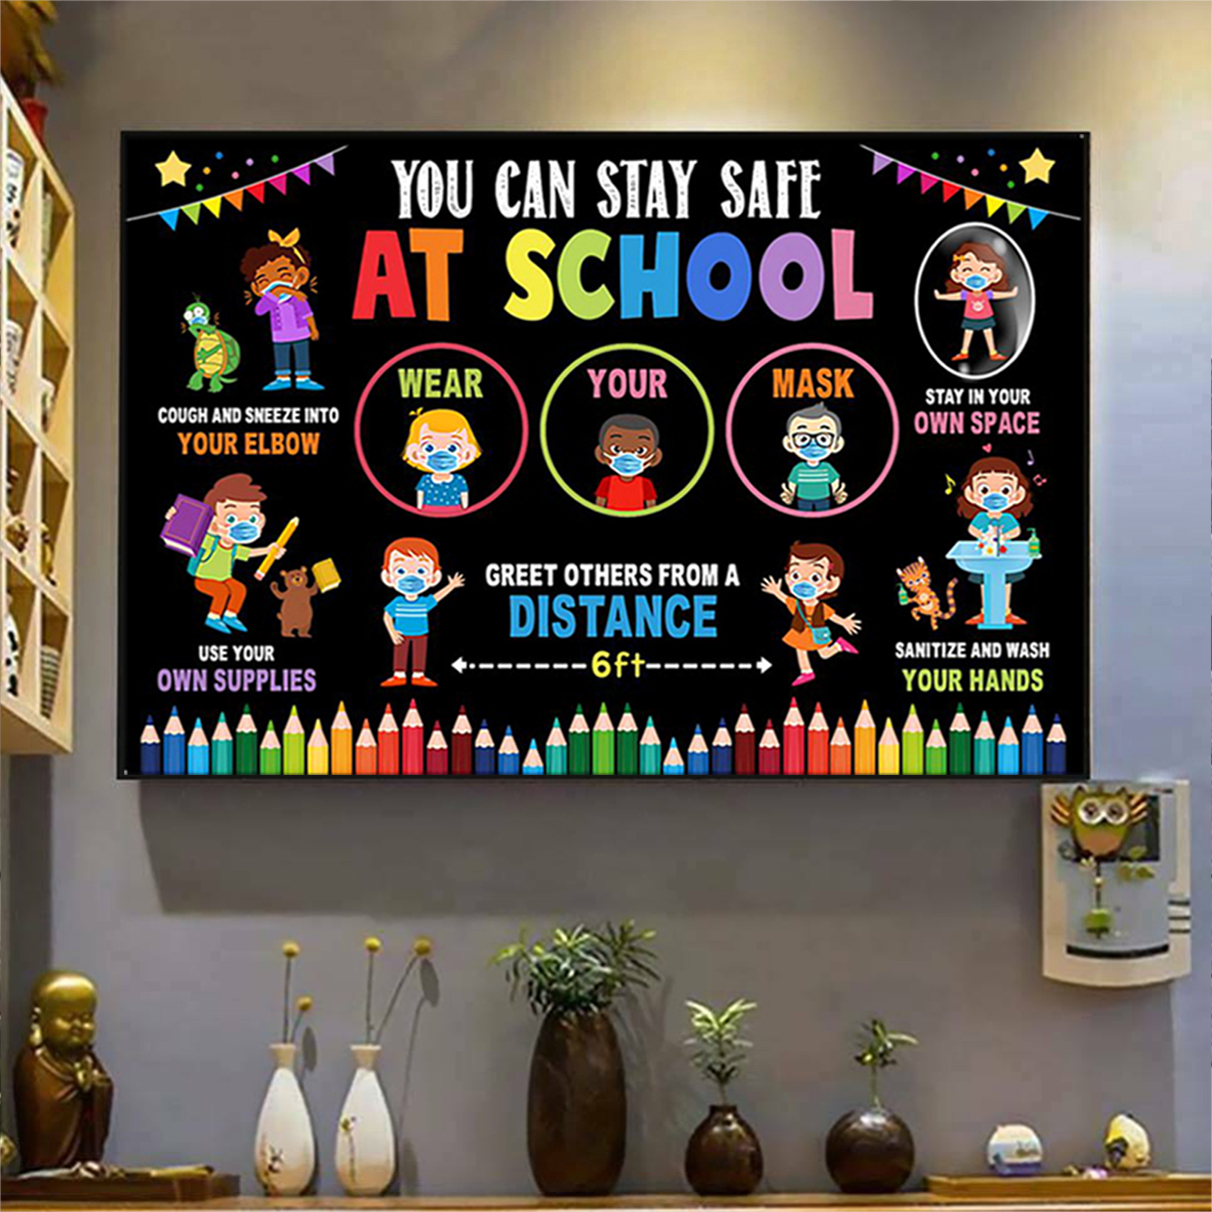 Classroom you can stay safe at school poster A3